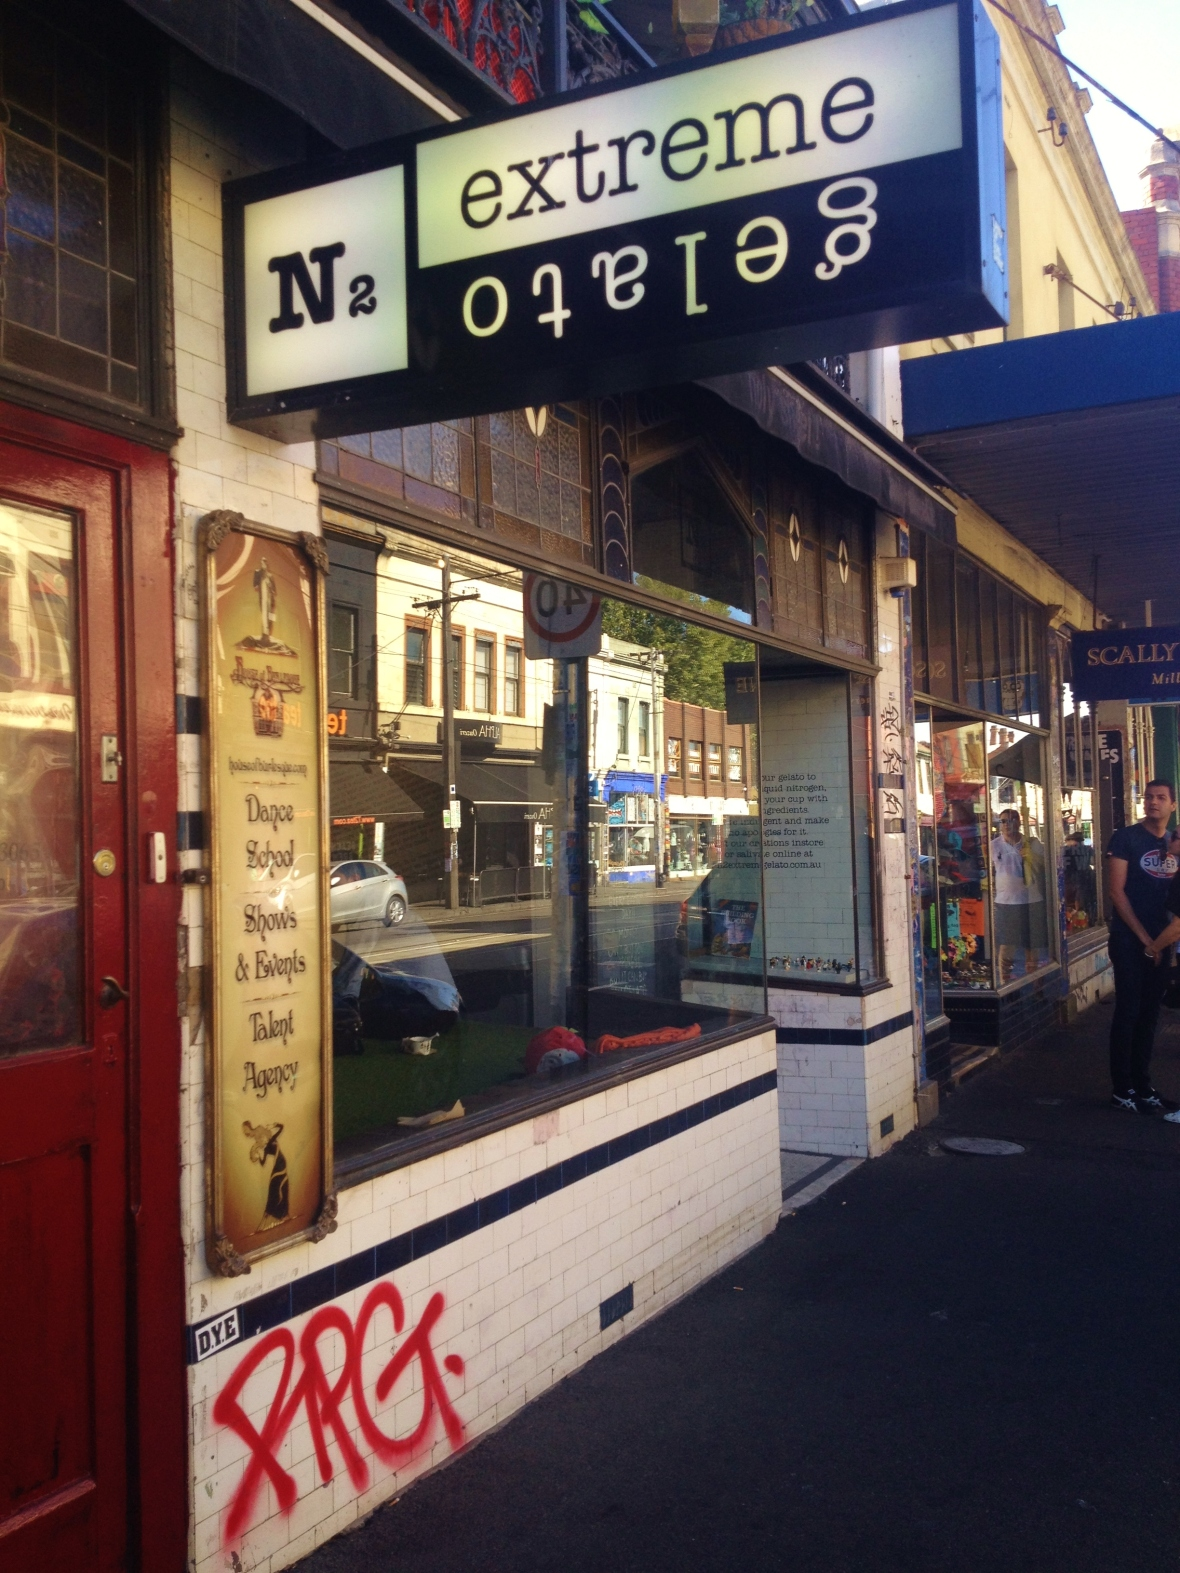 N2 Extreme Gelato - the frontage